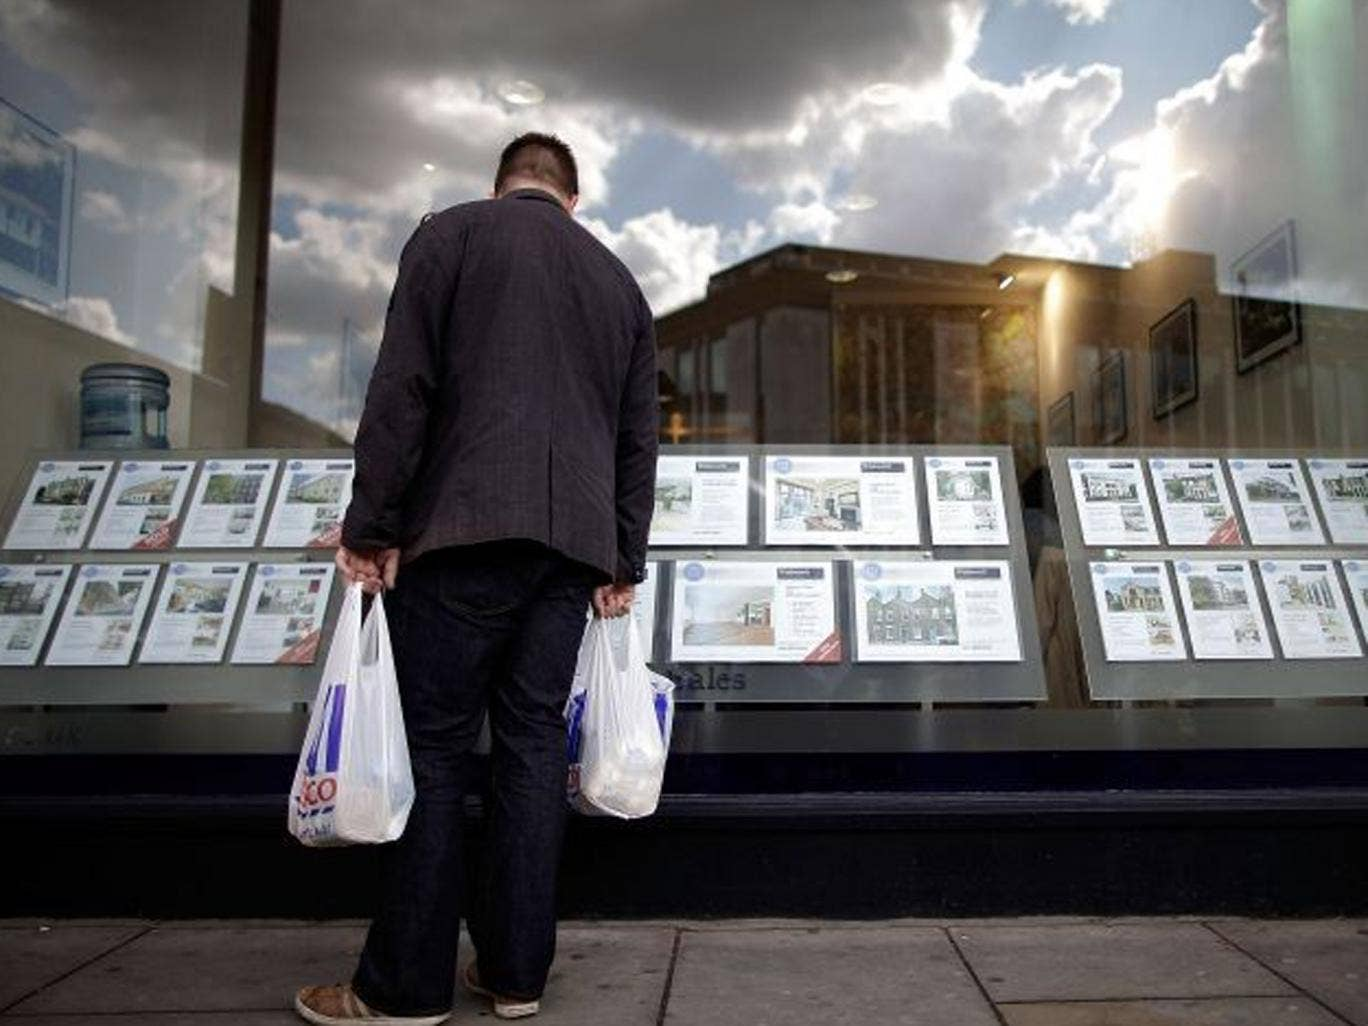 House buyers can take their pick of more than 3,500 home loans, the most available since the financial crisis